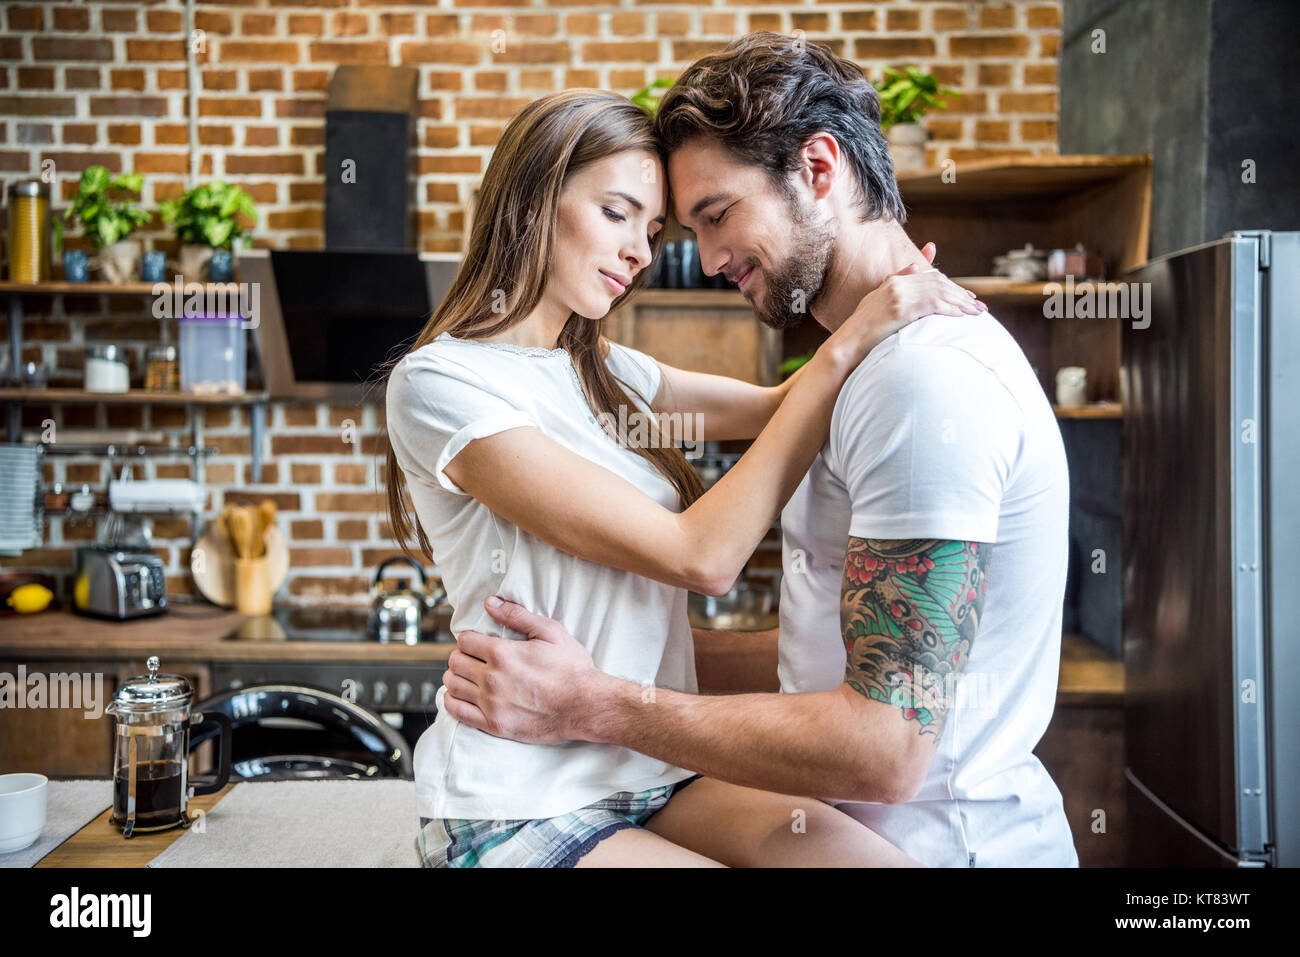 Couple hugging in kitchen - Stock Image